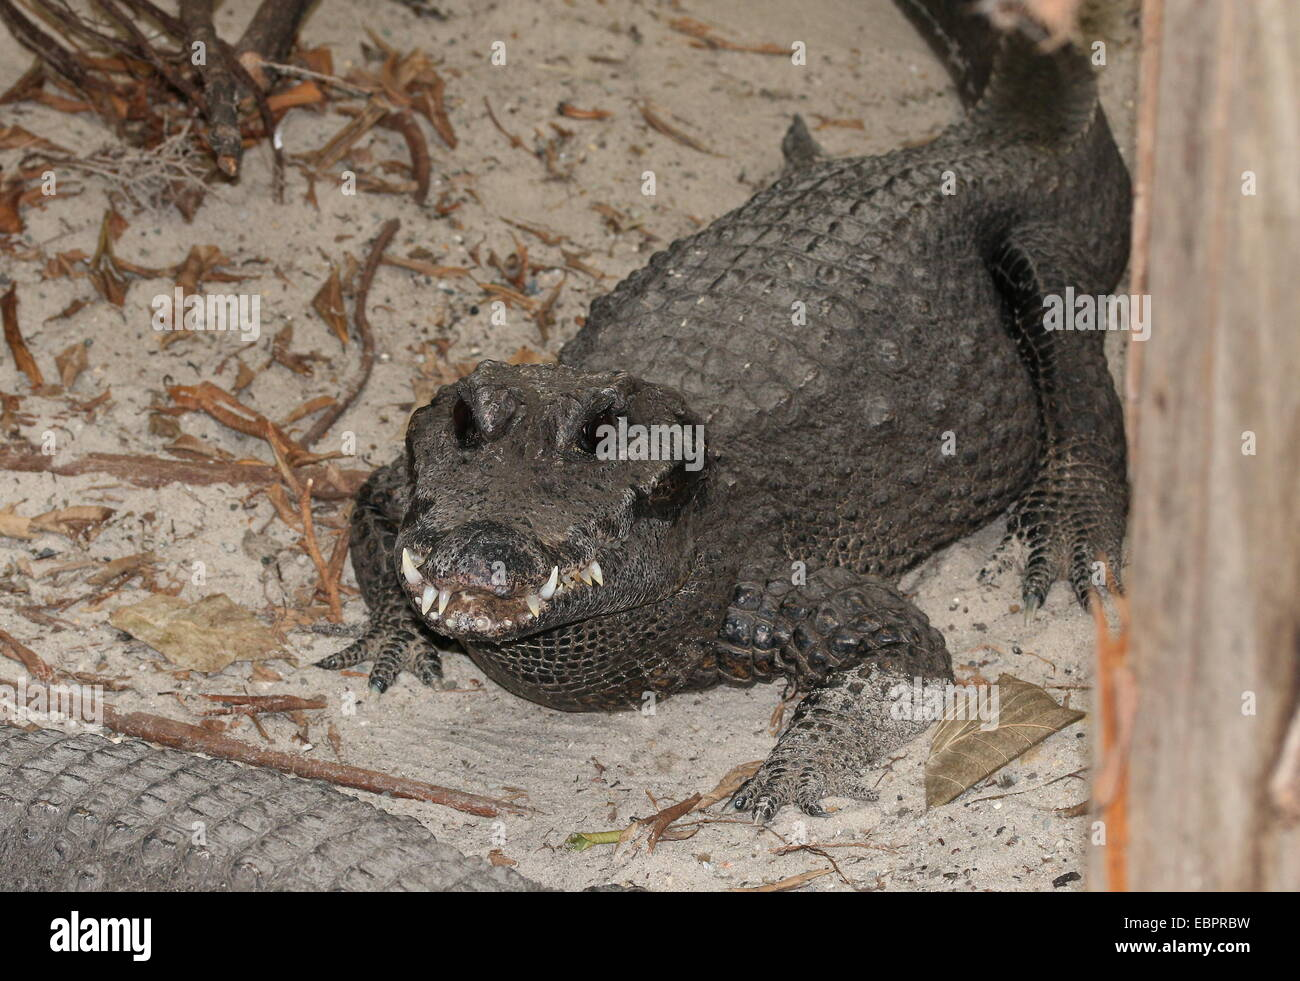 West-African Dwarf Crocodile (Osteolaemus tetraspis), a.k.a. Broad-snouted or Bony crocodile Stock Photo